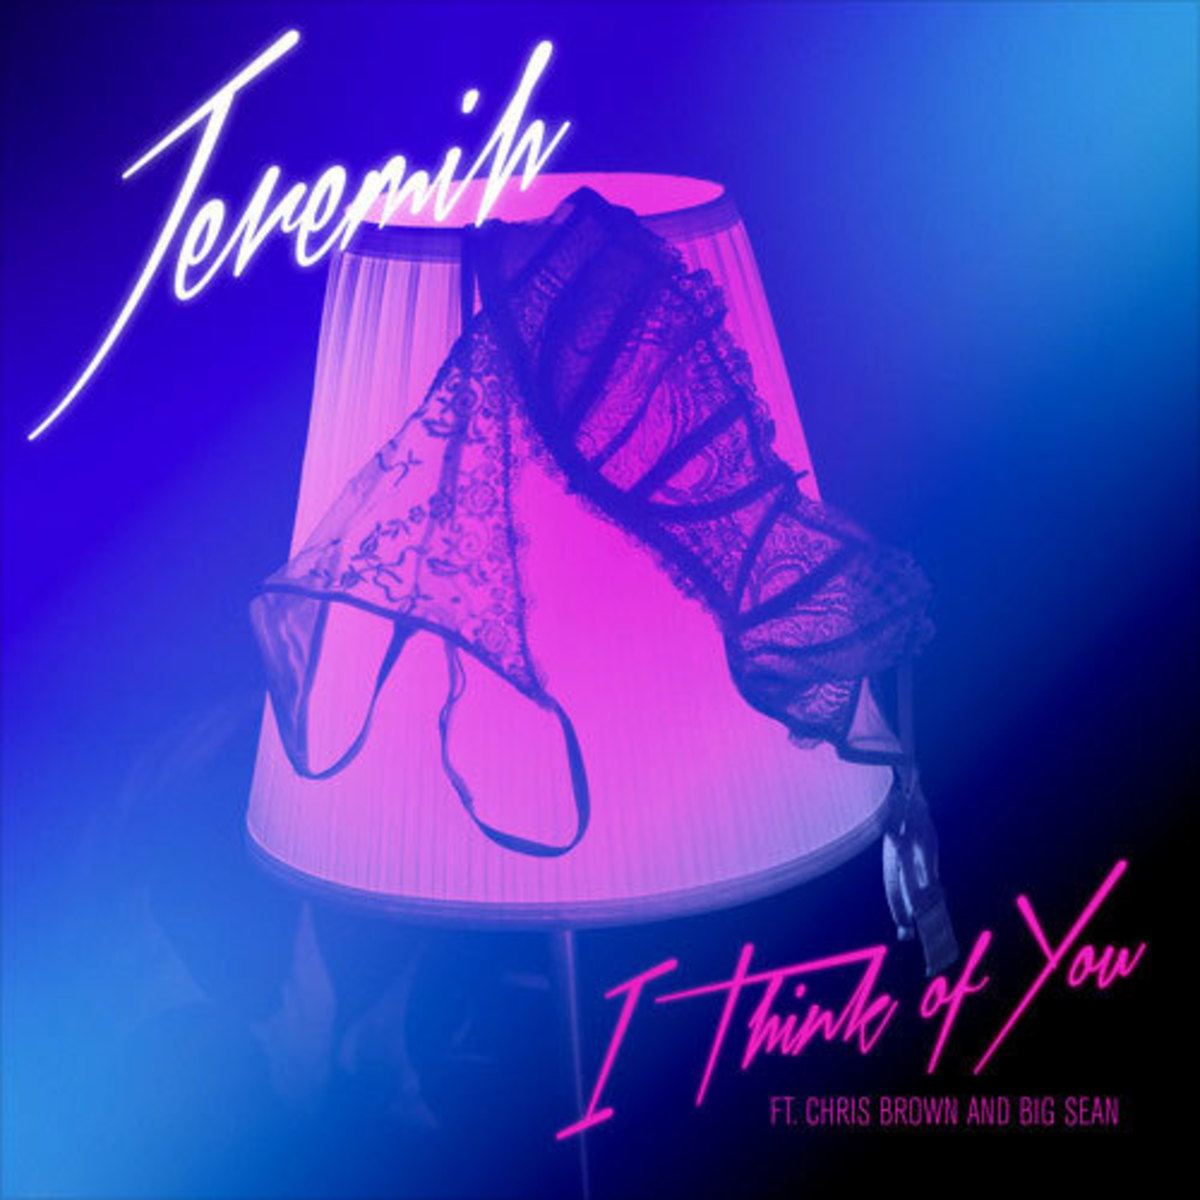 jeremih-i-think-of-you.jpg